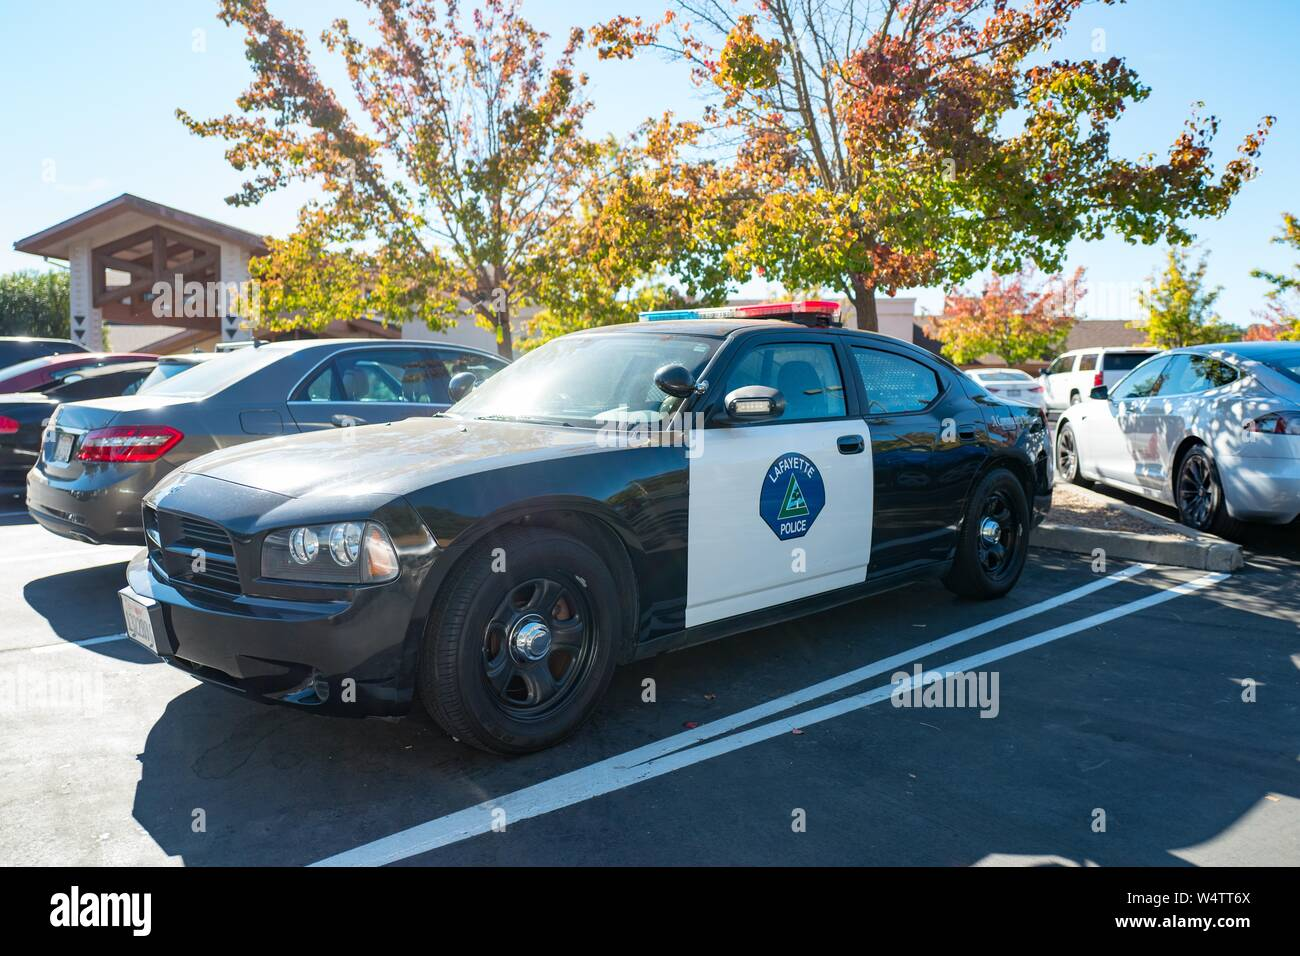 Mass Shooting Stock Photos & Mass Shooting Stock Images - Alamy